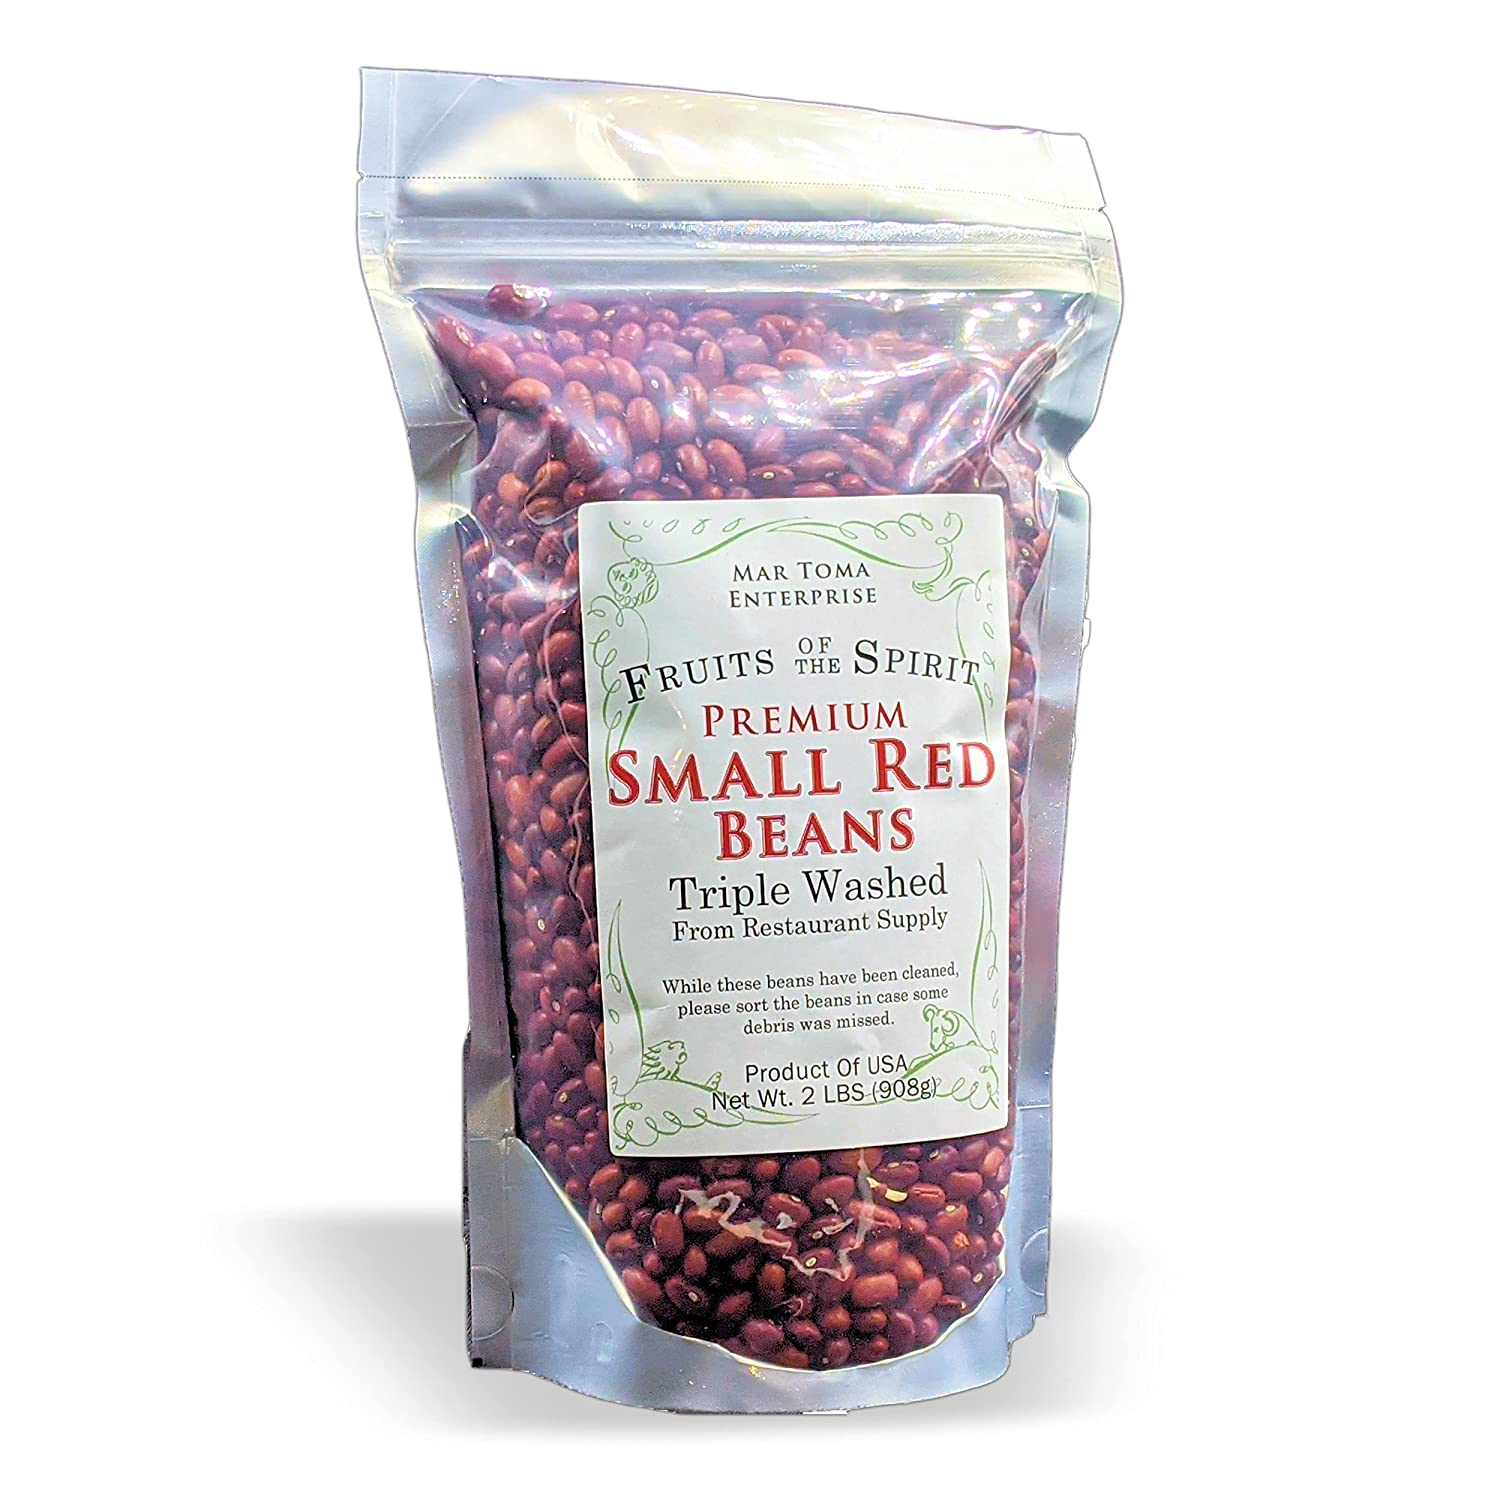 FOTS Small Red Beans Dry- 2 Pounds, Great For Louisiana Style Red Beans And Rice, Jambalaya, Creole, Baked Beans, Fruits Of The Spirit Brand